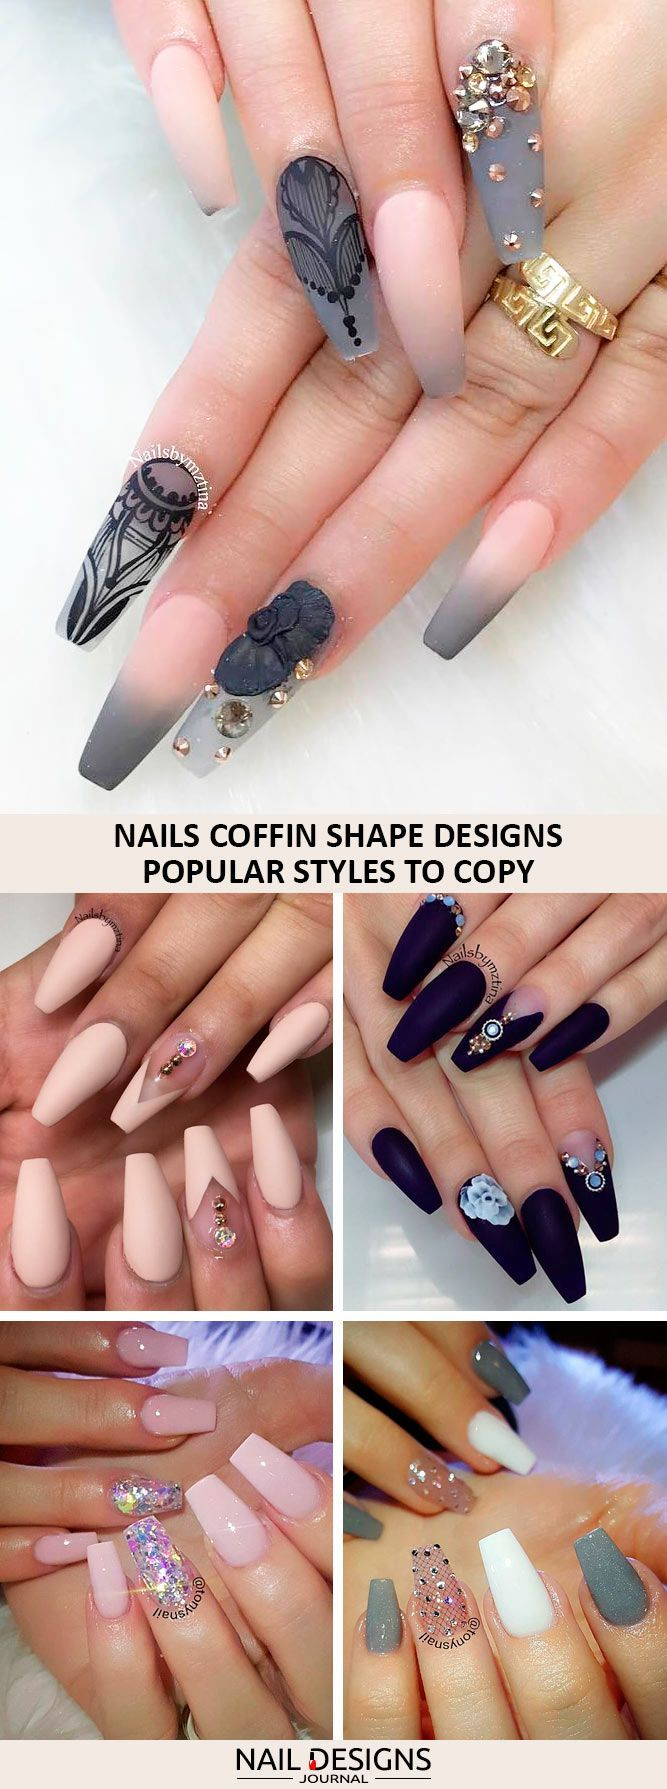 A nails coffin shape is very attractive. Maybe these variants will inspire you to make some experiments with your nails.